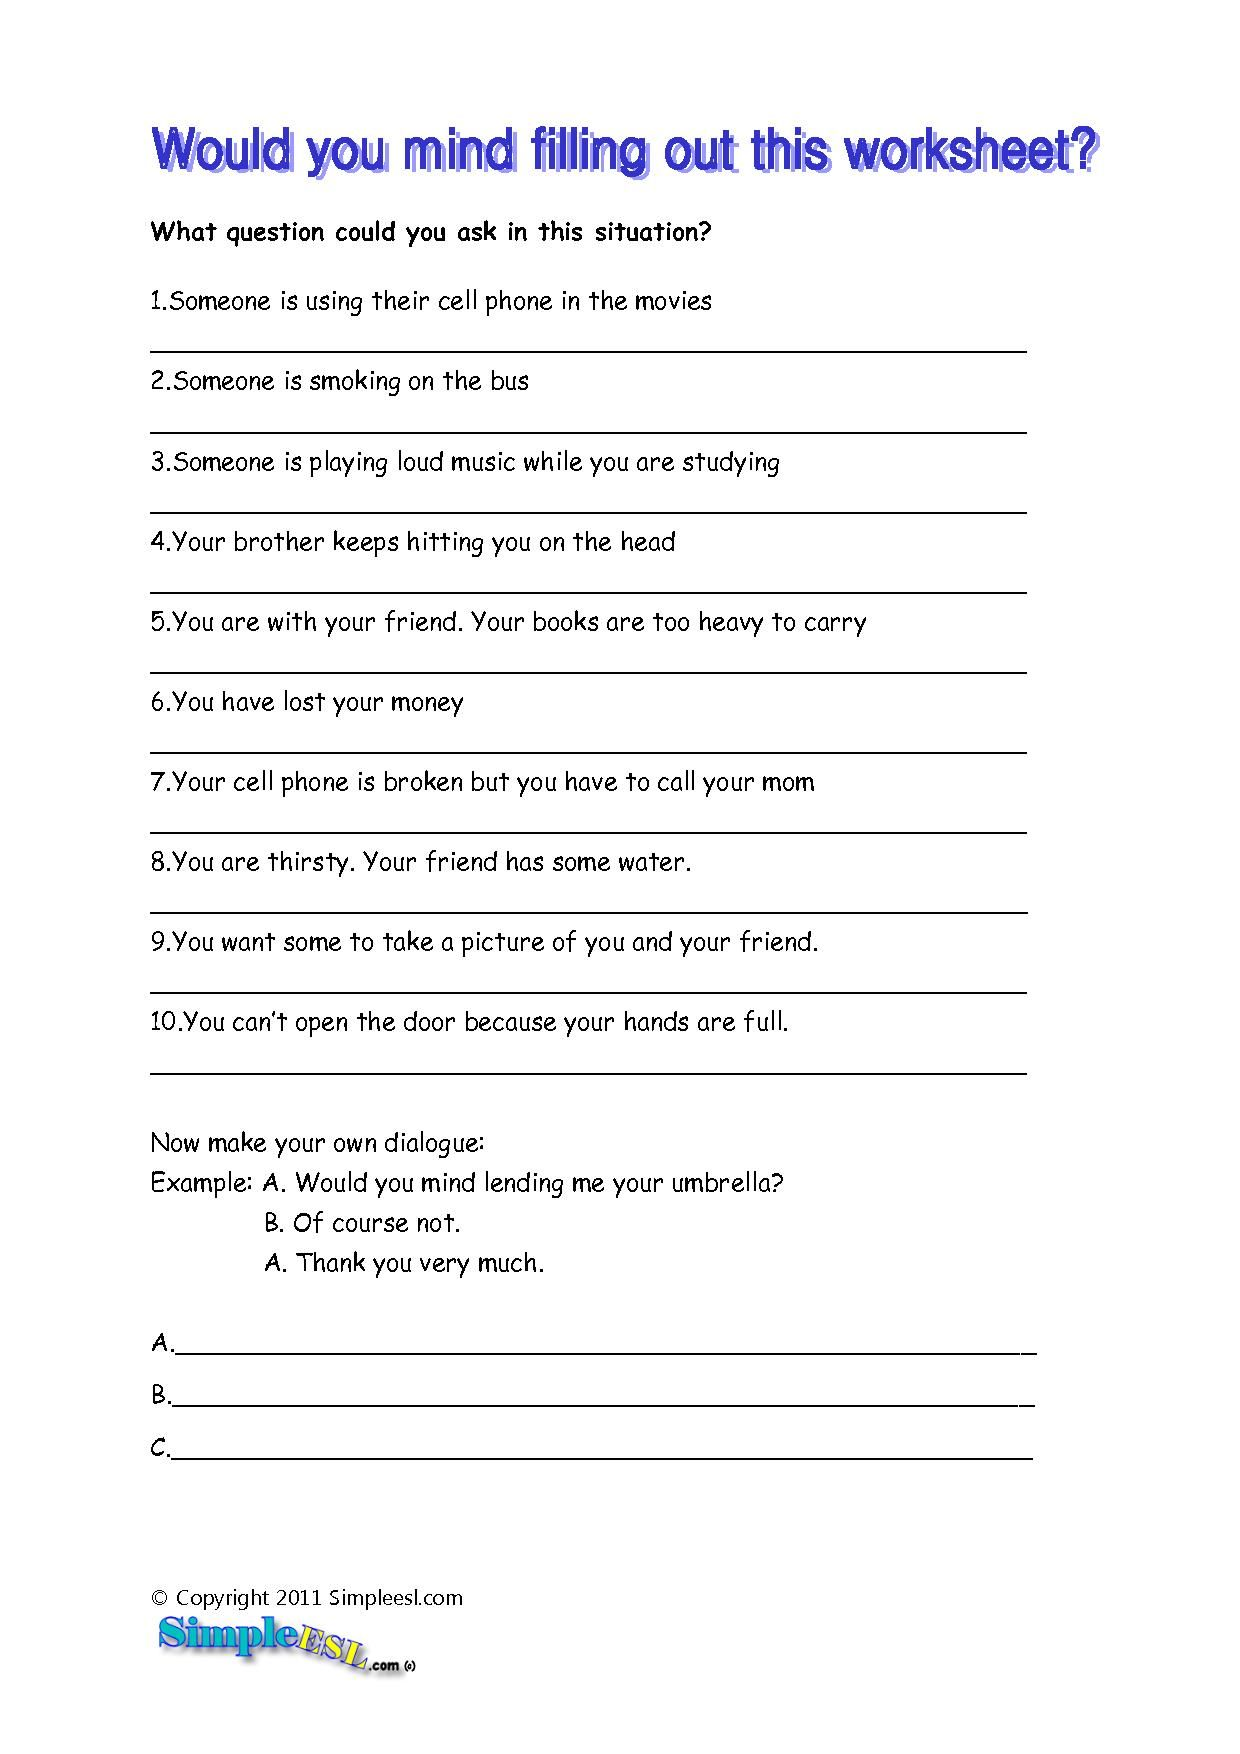 esl questions worksheet Google Search – Esl Writing Worksheets